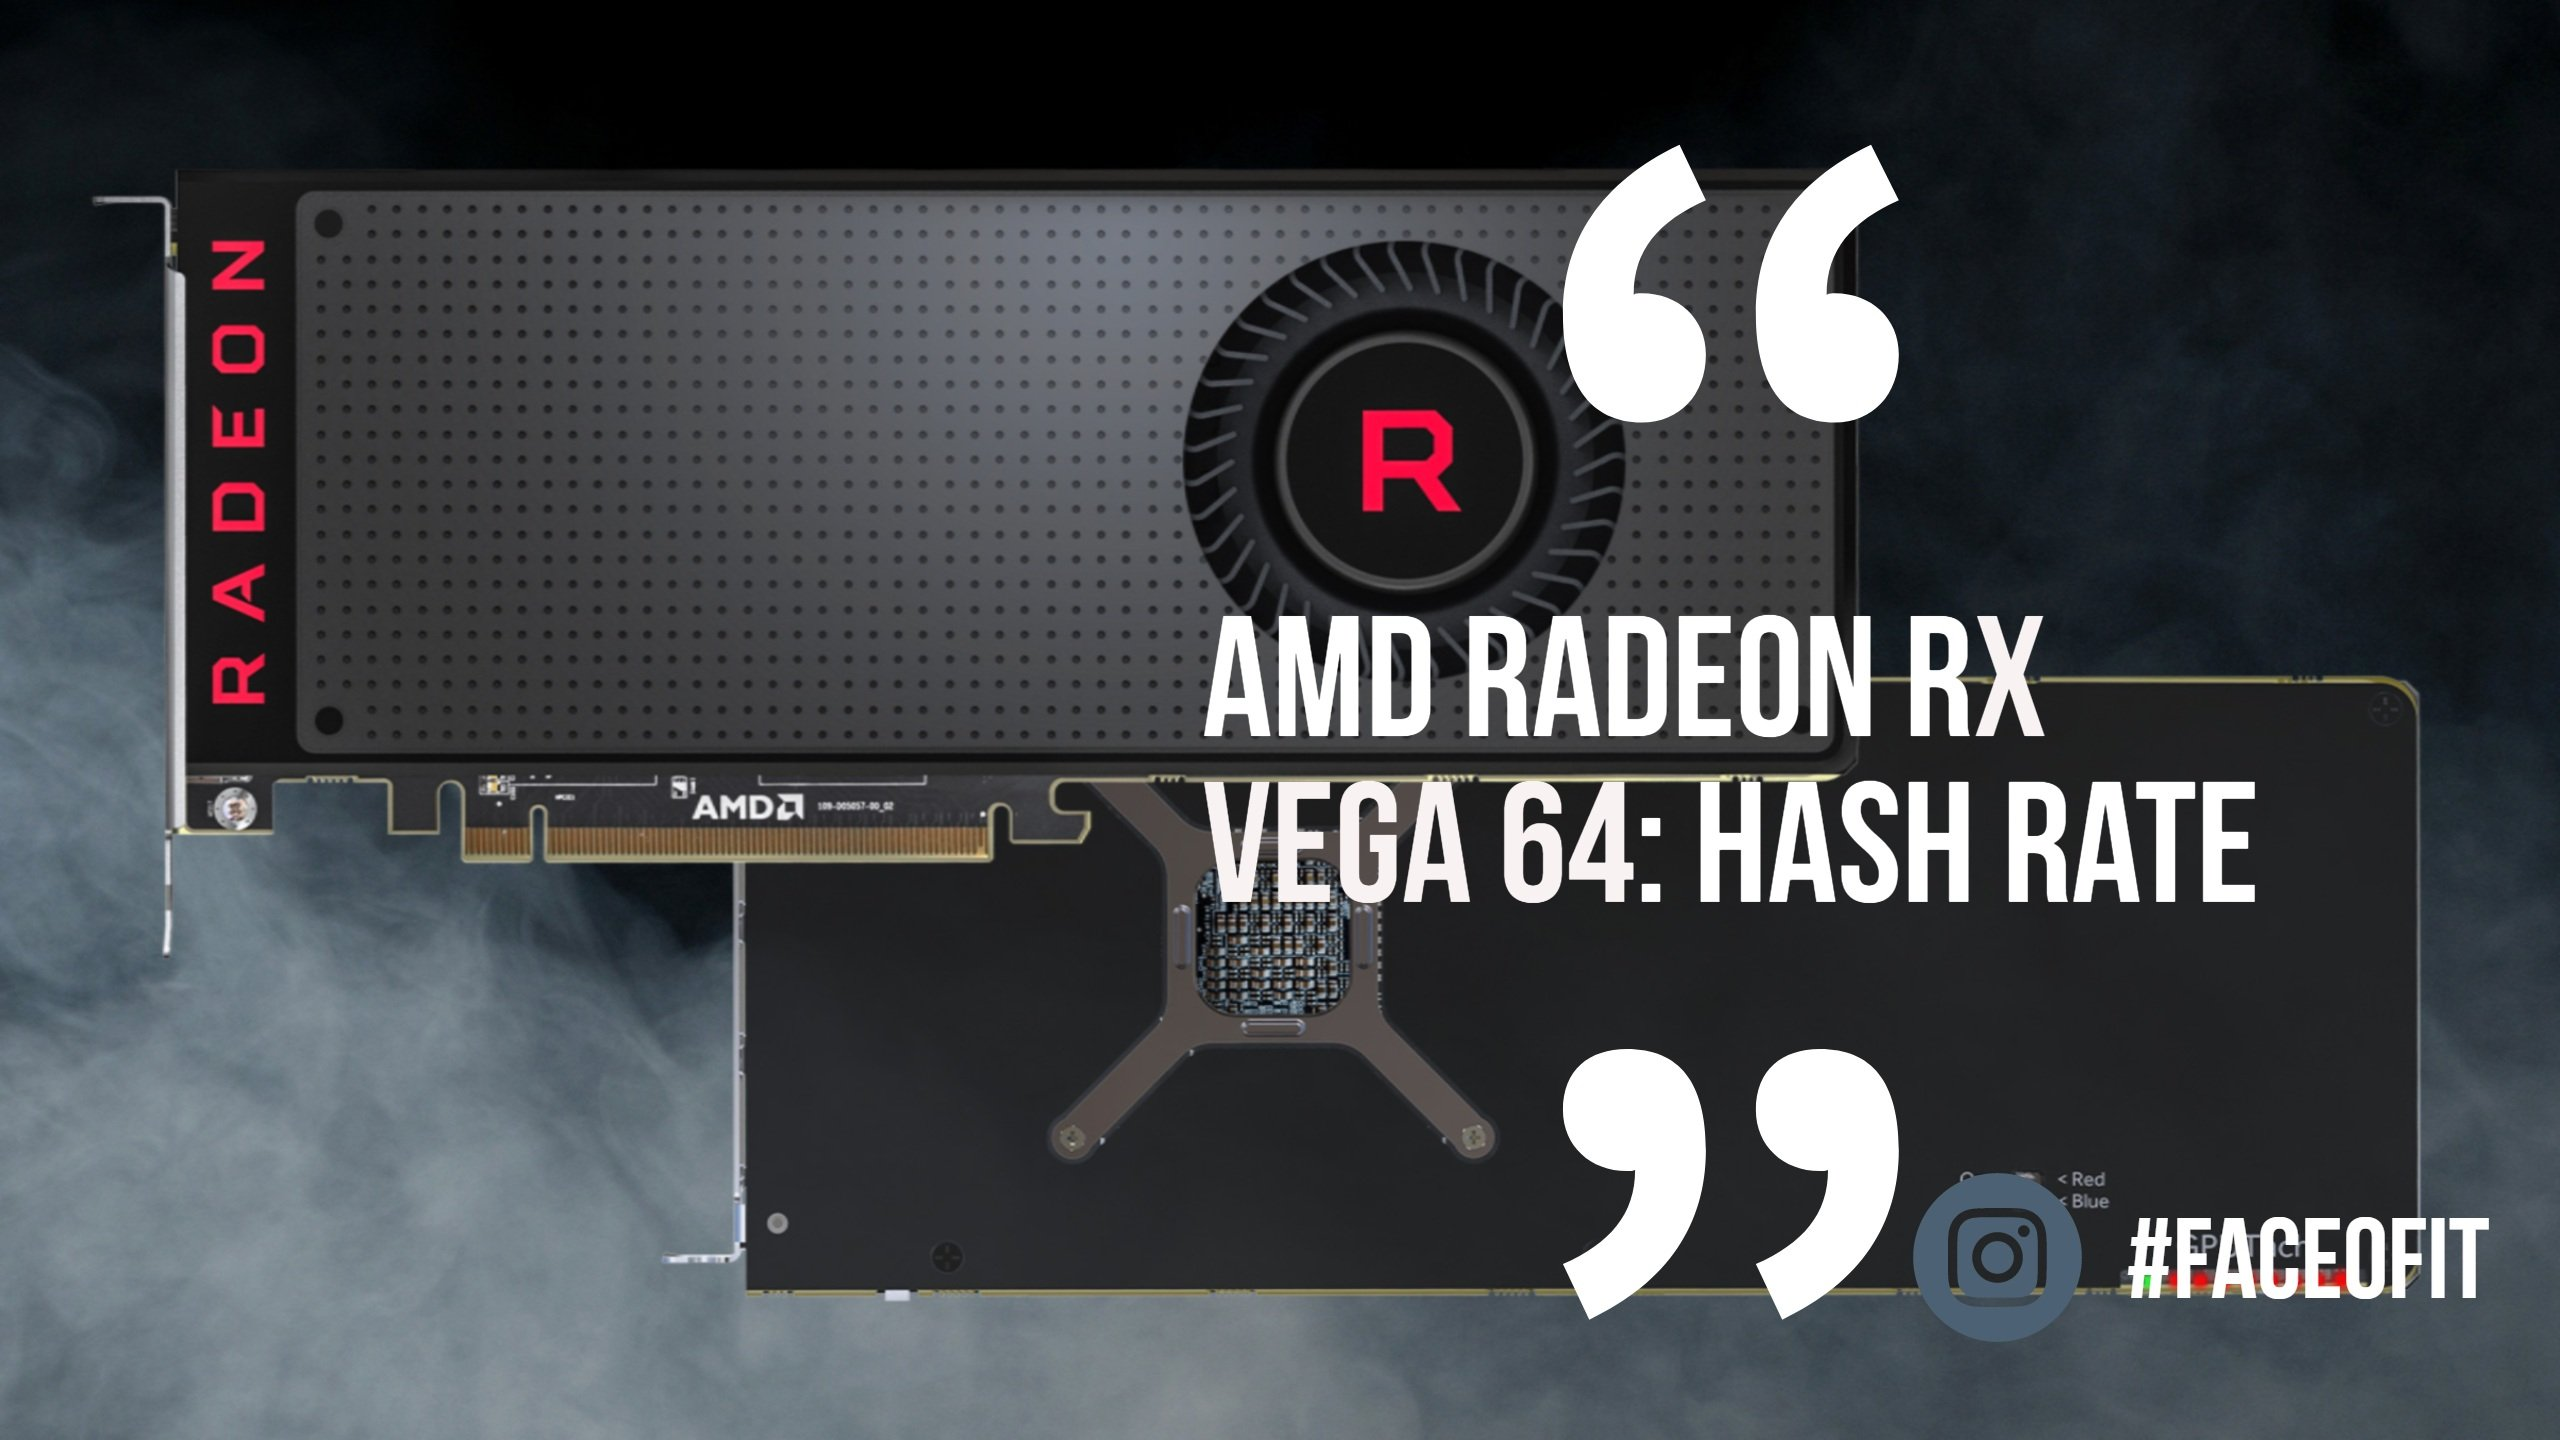 Amd Radeon Vega 56 Vs 64 Mining Hashrate For Cryptocurrency Mining